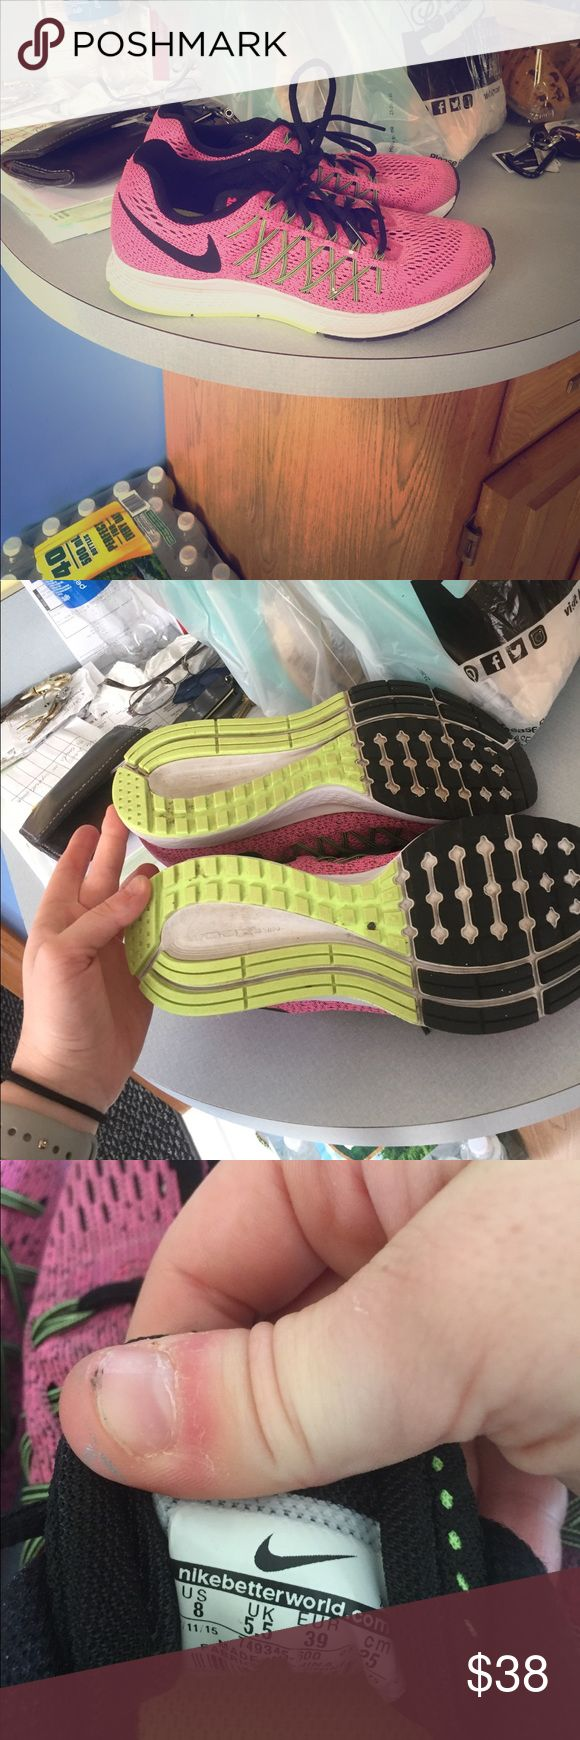 Nike Pegasus! Super clean! Barley worn, pink and green Nike Pegasus size 8 great for long distance running! It's all I wear but I own like 10 pairs lol trying to condense down to a few Nike Shoes Sneakers